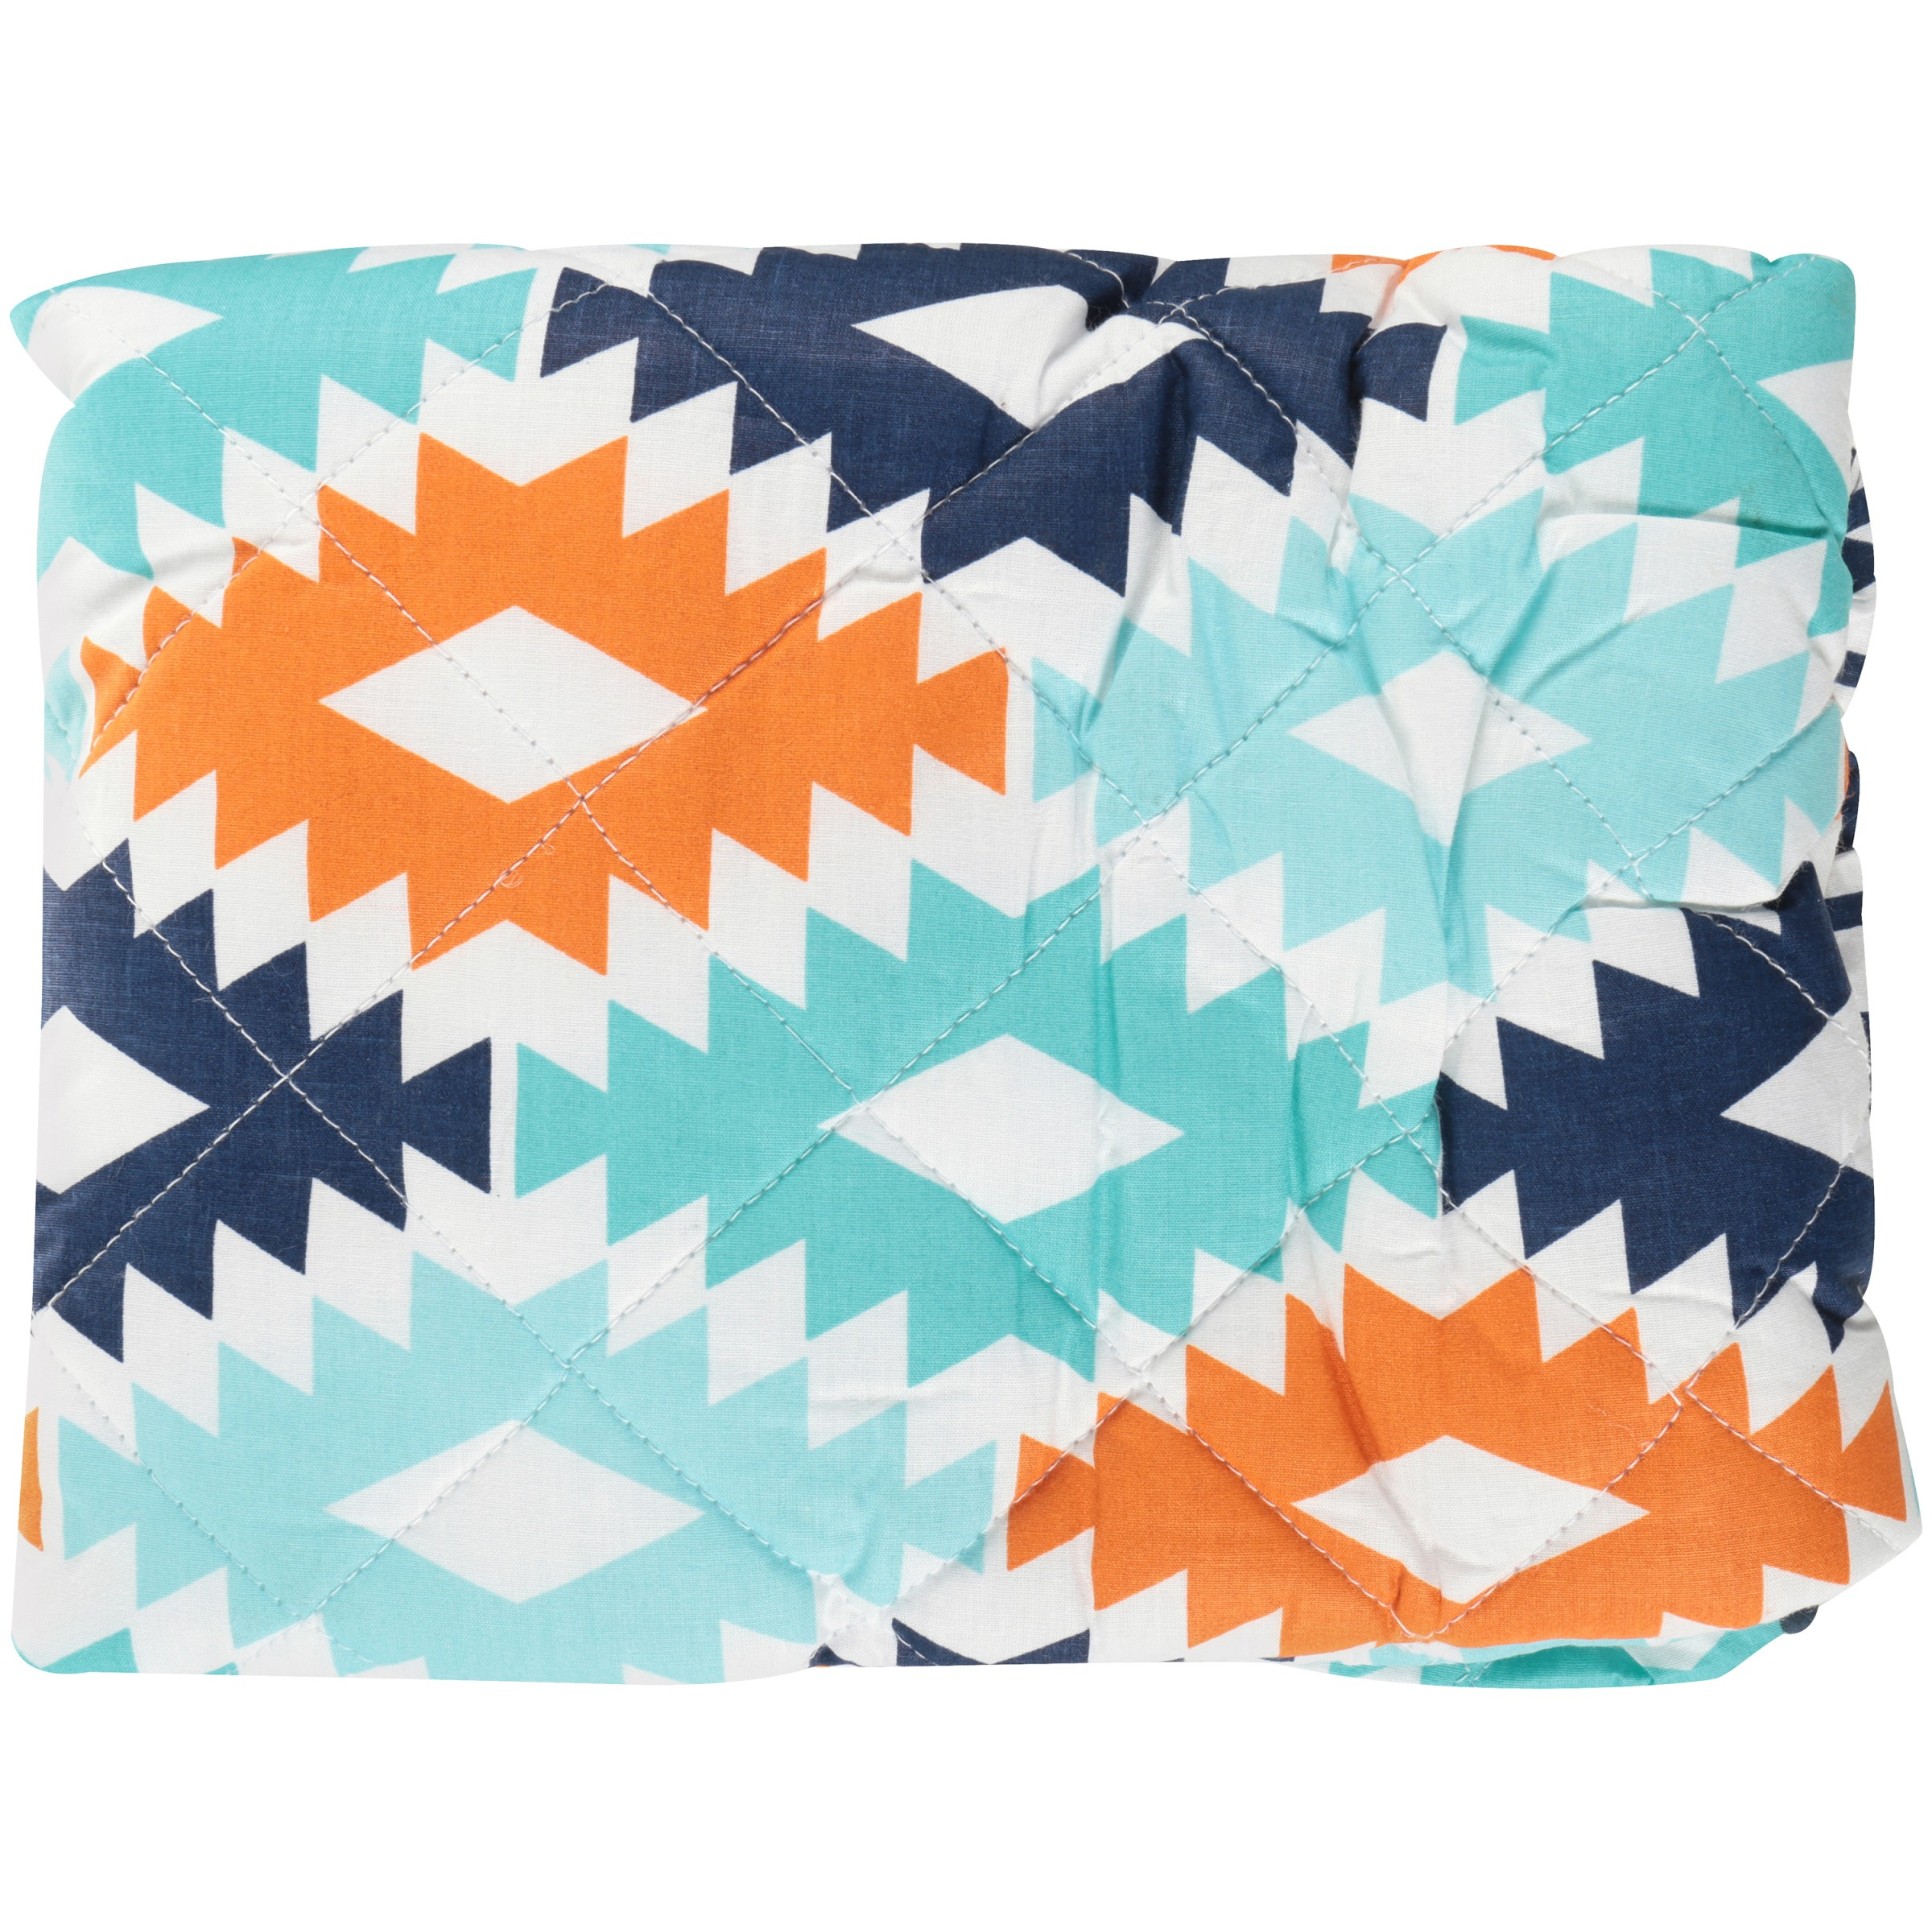 Bacati Liam Aztec Kilim Aqua Orange Navy Quilted Changing Pad Cover